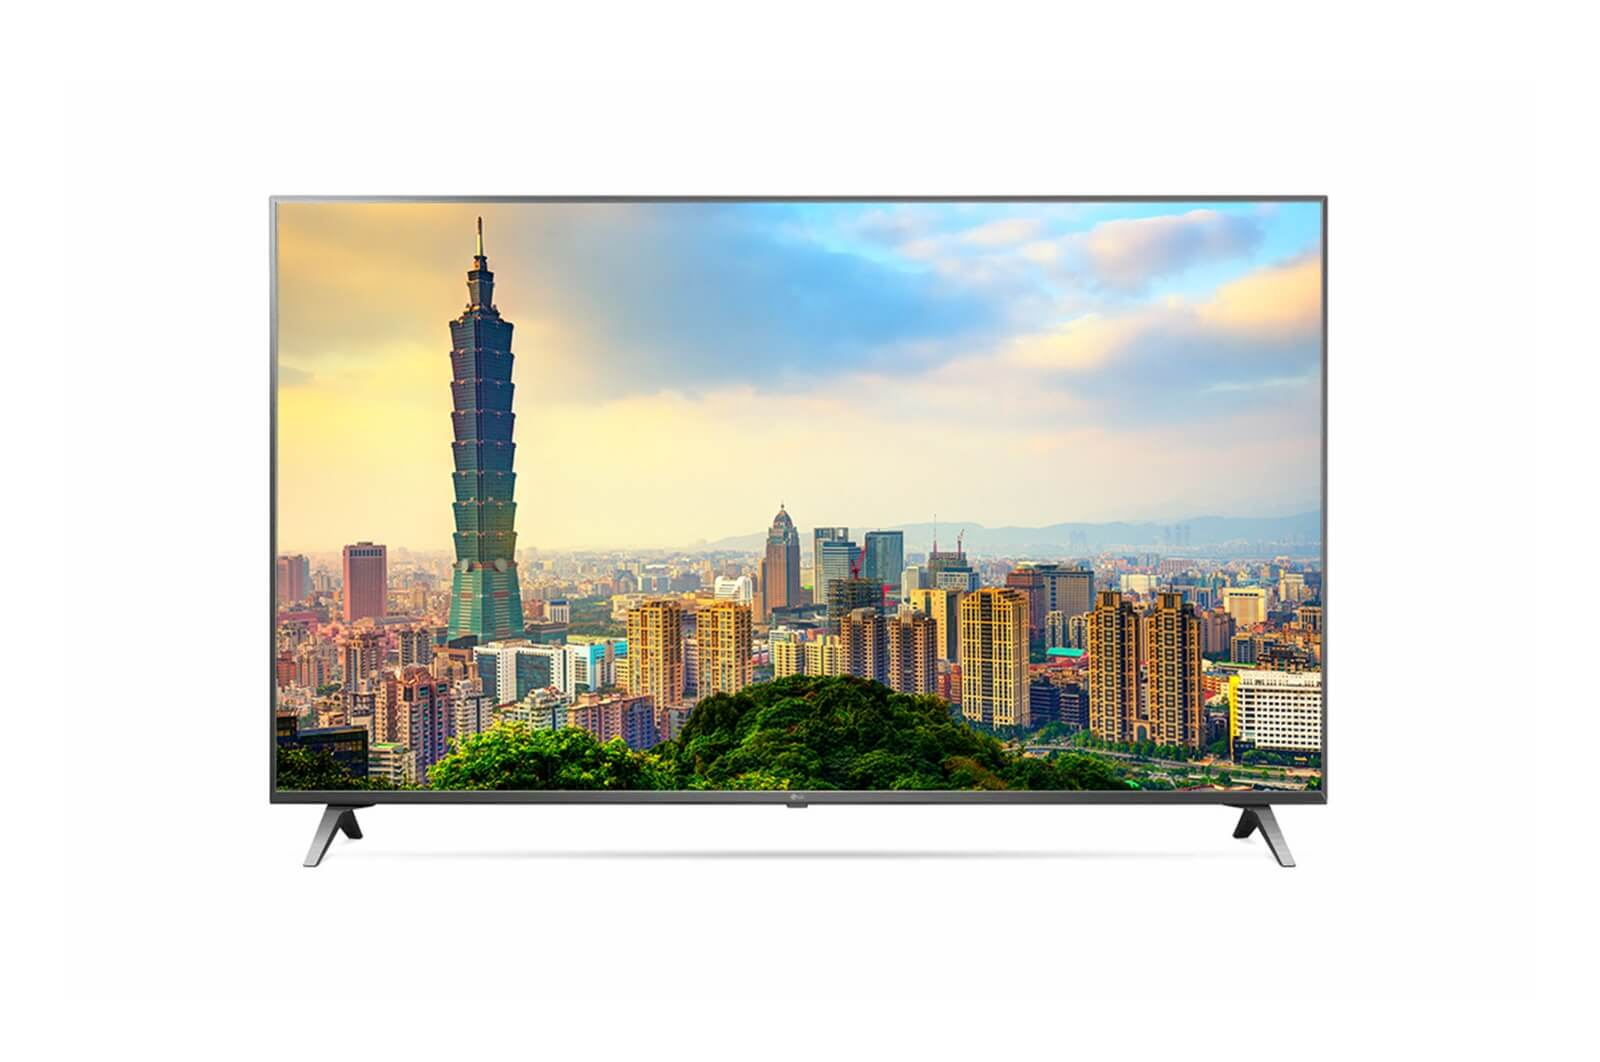 LG SK8000 Super UHD 4K HDR Premium Smart LED TV with Freeview Play - Brilliant Titan